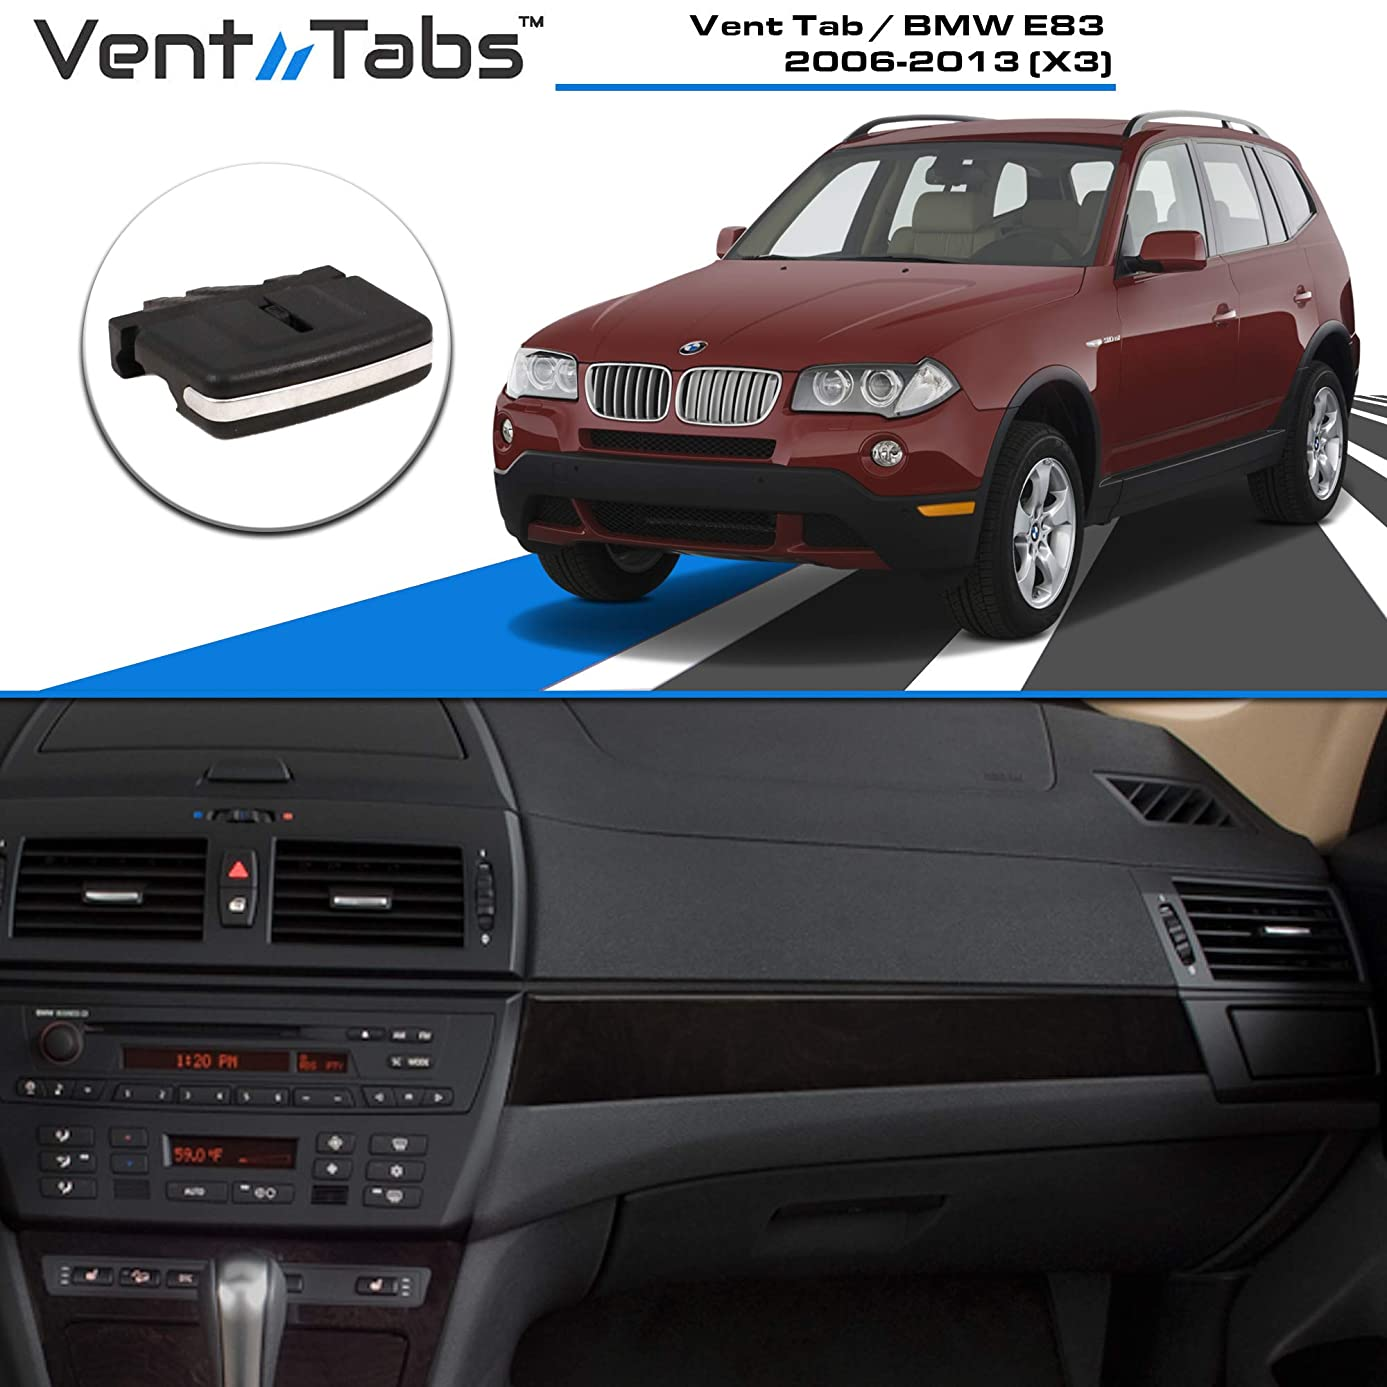 Venttabs for BMW X3 (2006-2013) E83 - Air Conditioning Vent Replacement Tab30-SECOND Installation Easy Clip on   No Screws or Tools Required   American Design - Vent Outlet Tab Clip